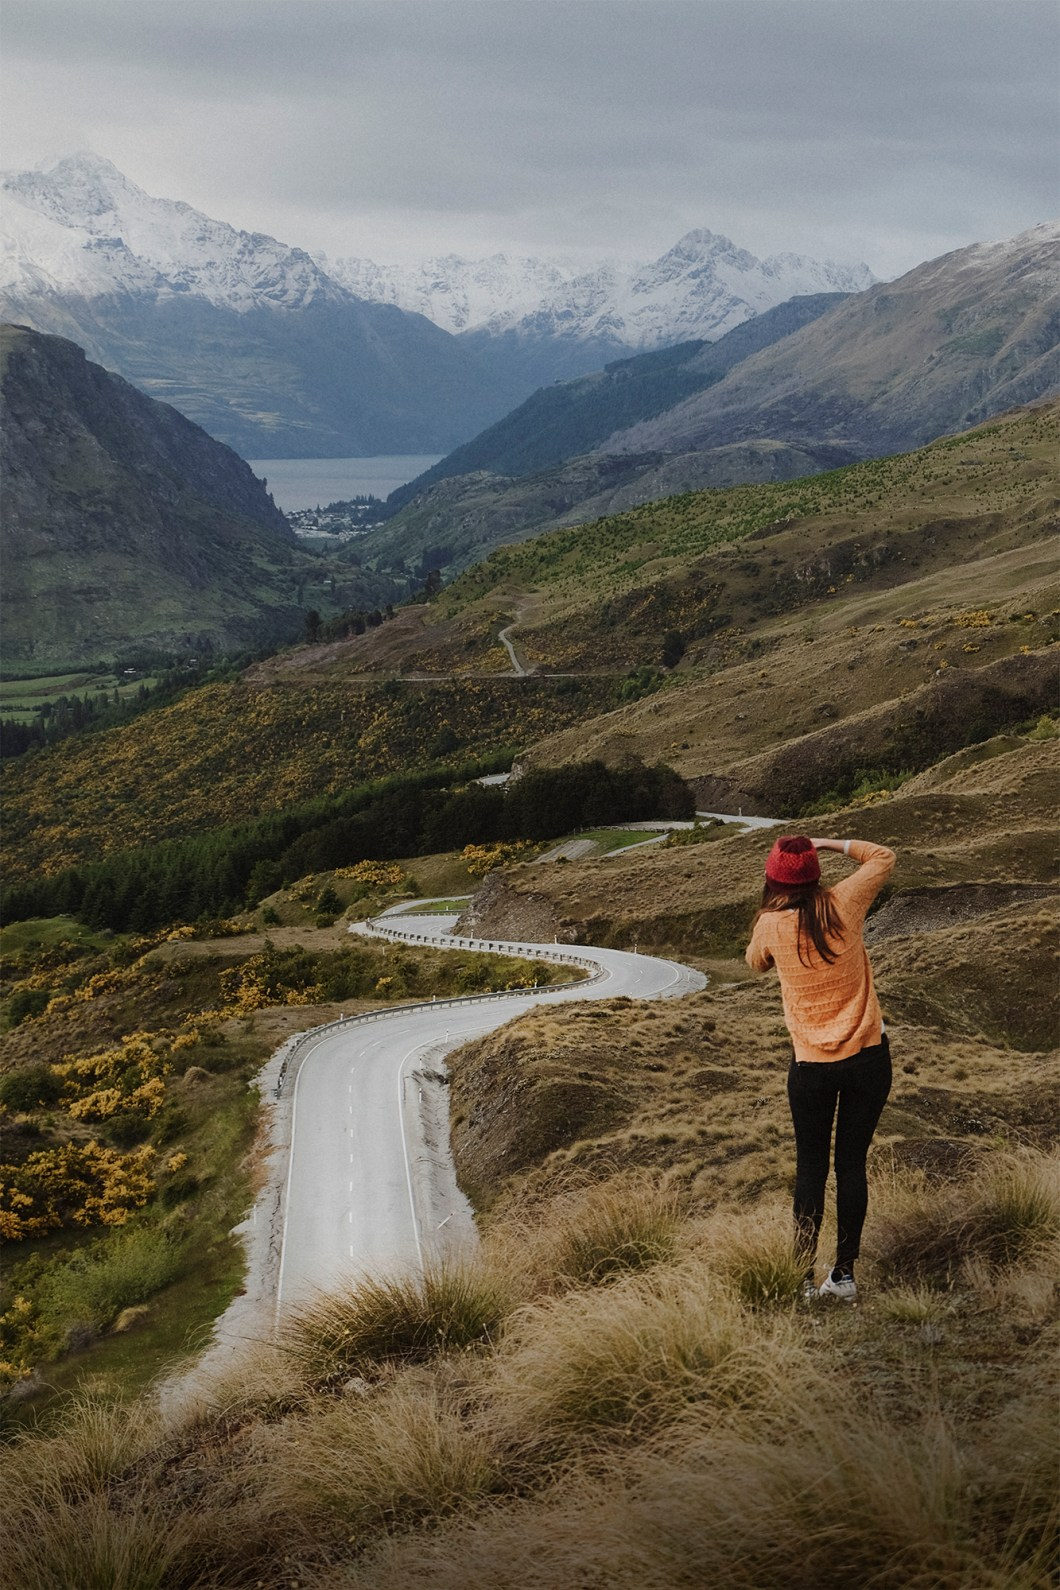 Queenstown New Zealand | How Far From Home